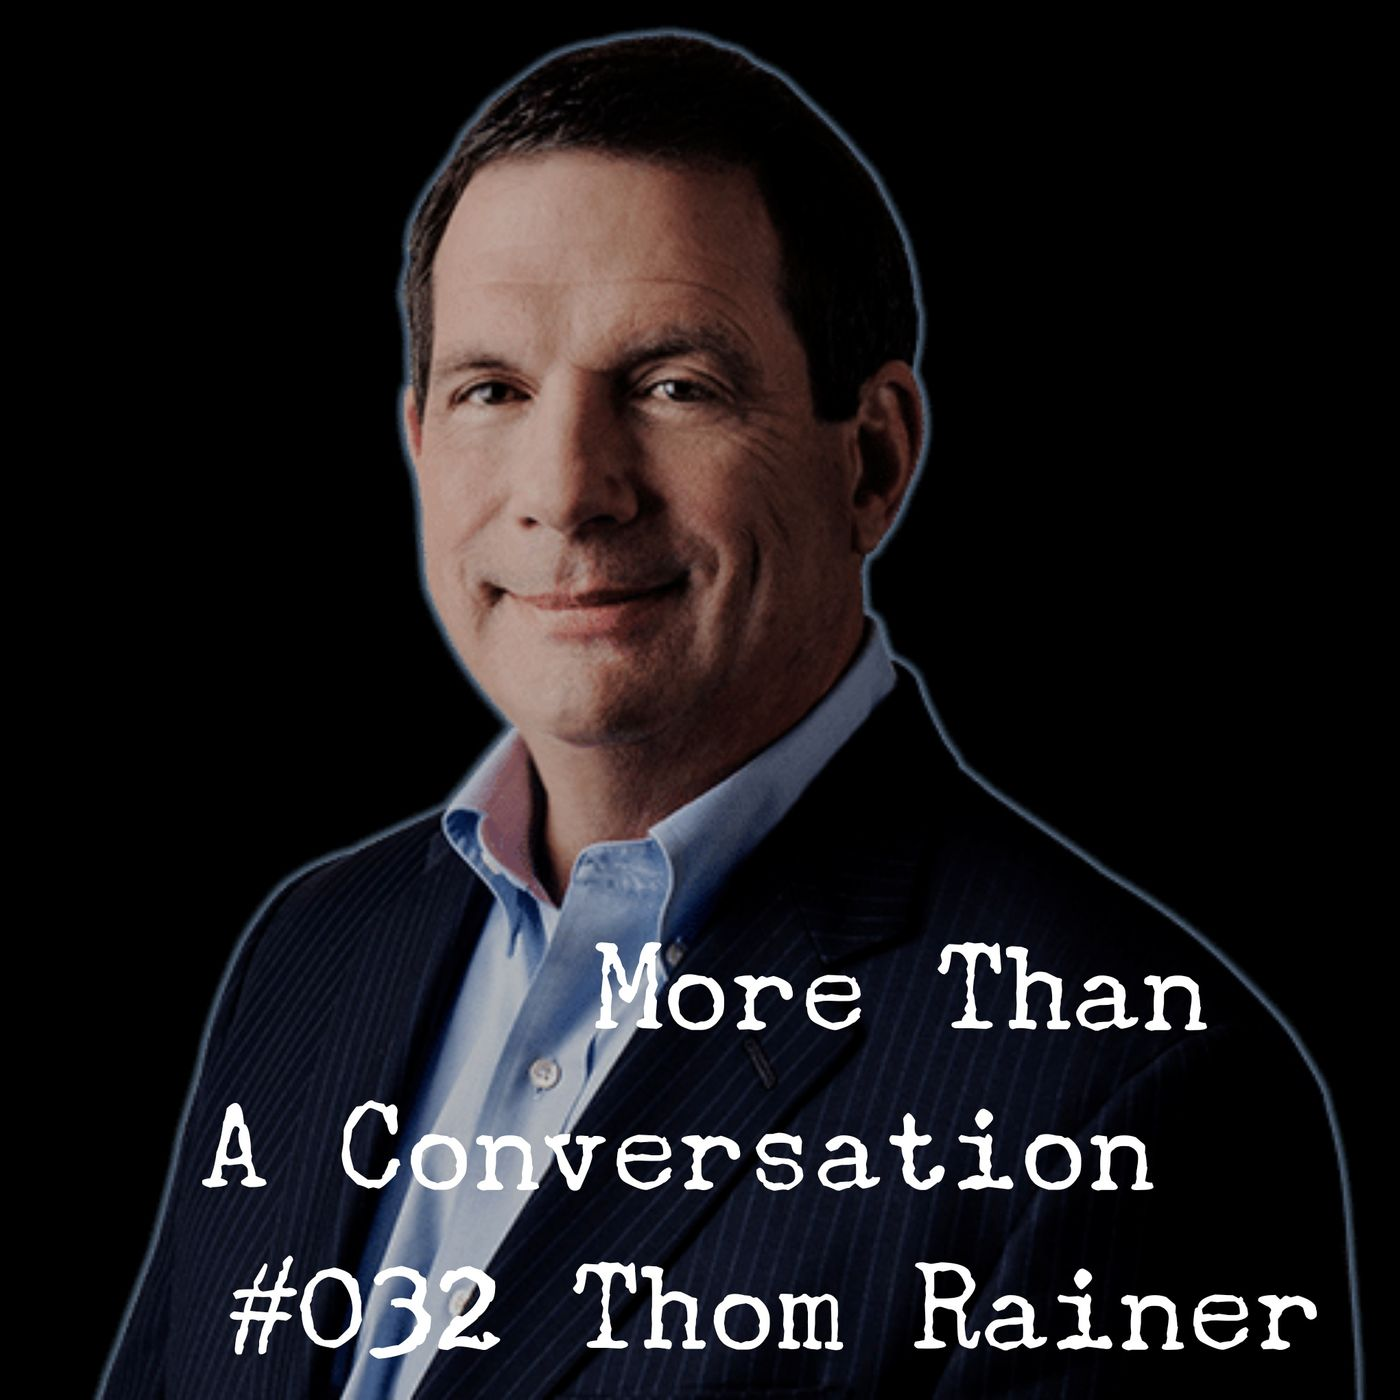 #032 Thom Rainer, author, church consultant, founder of Church Answers